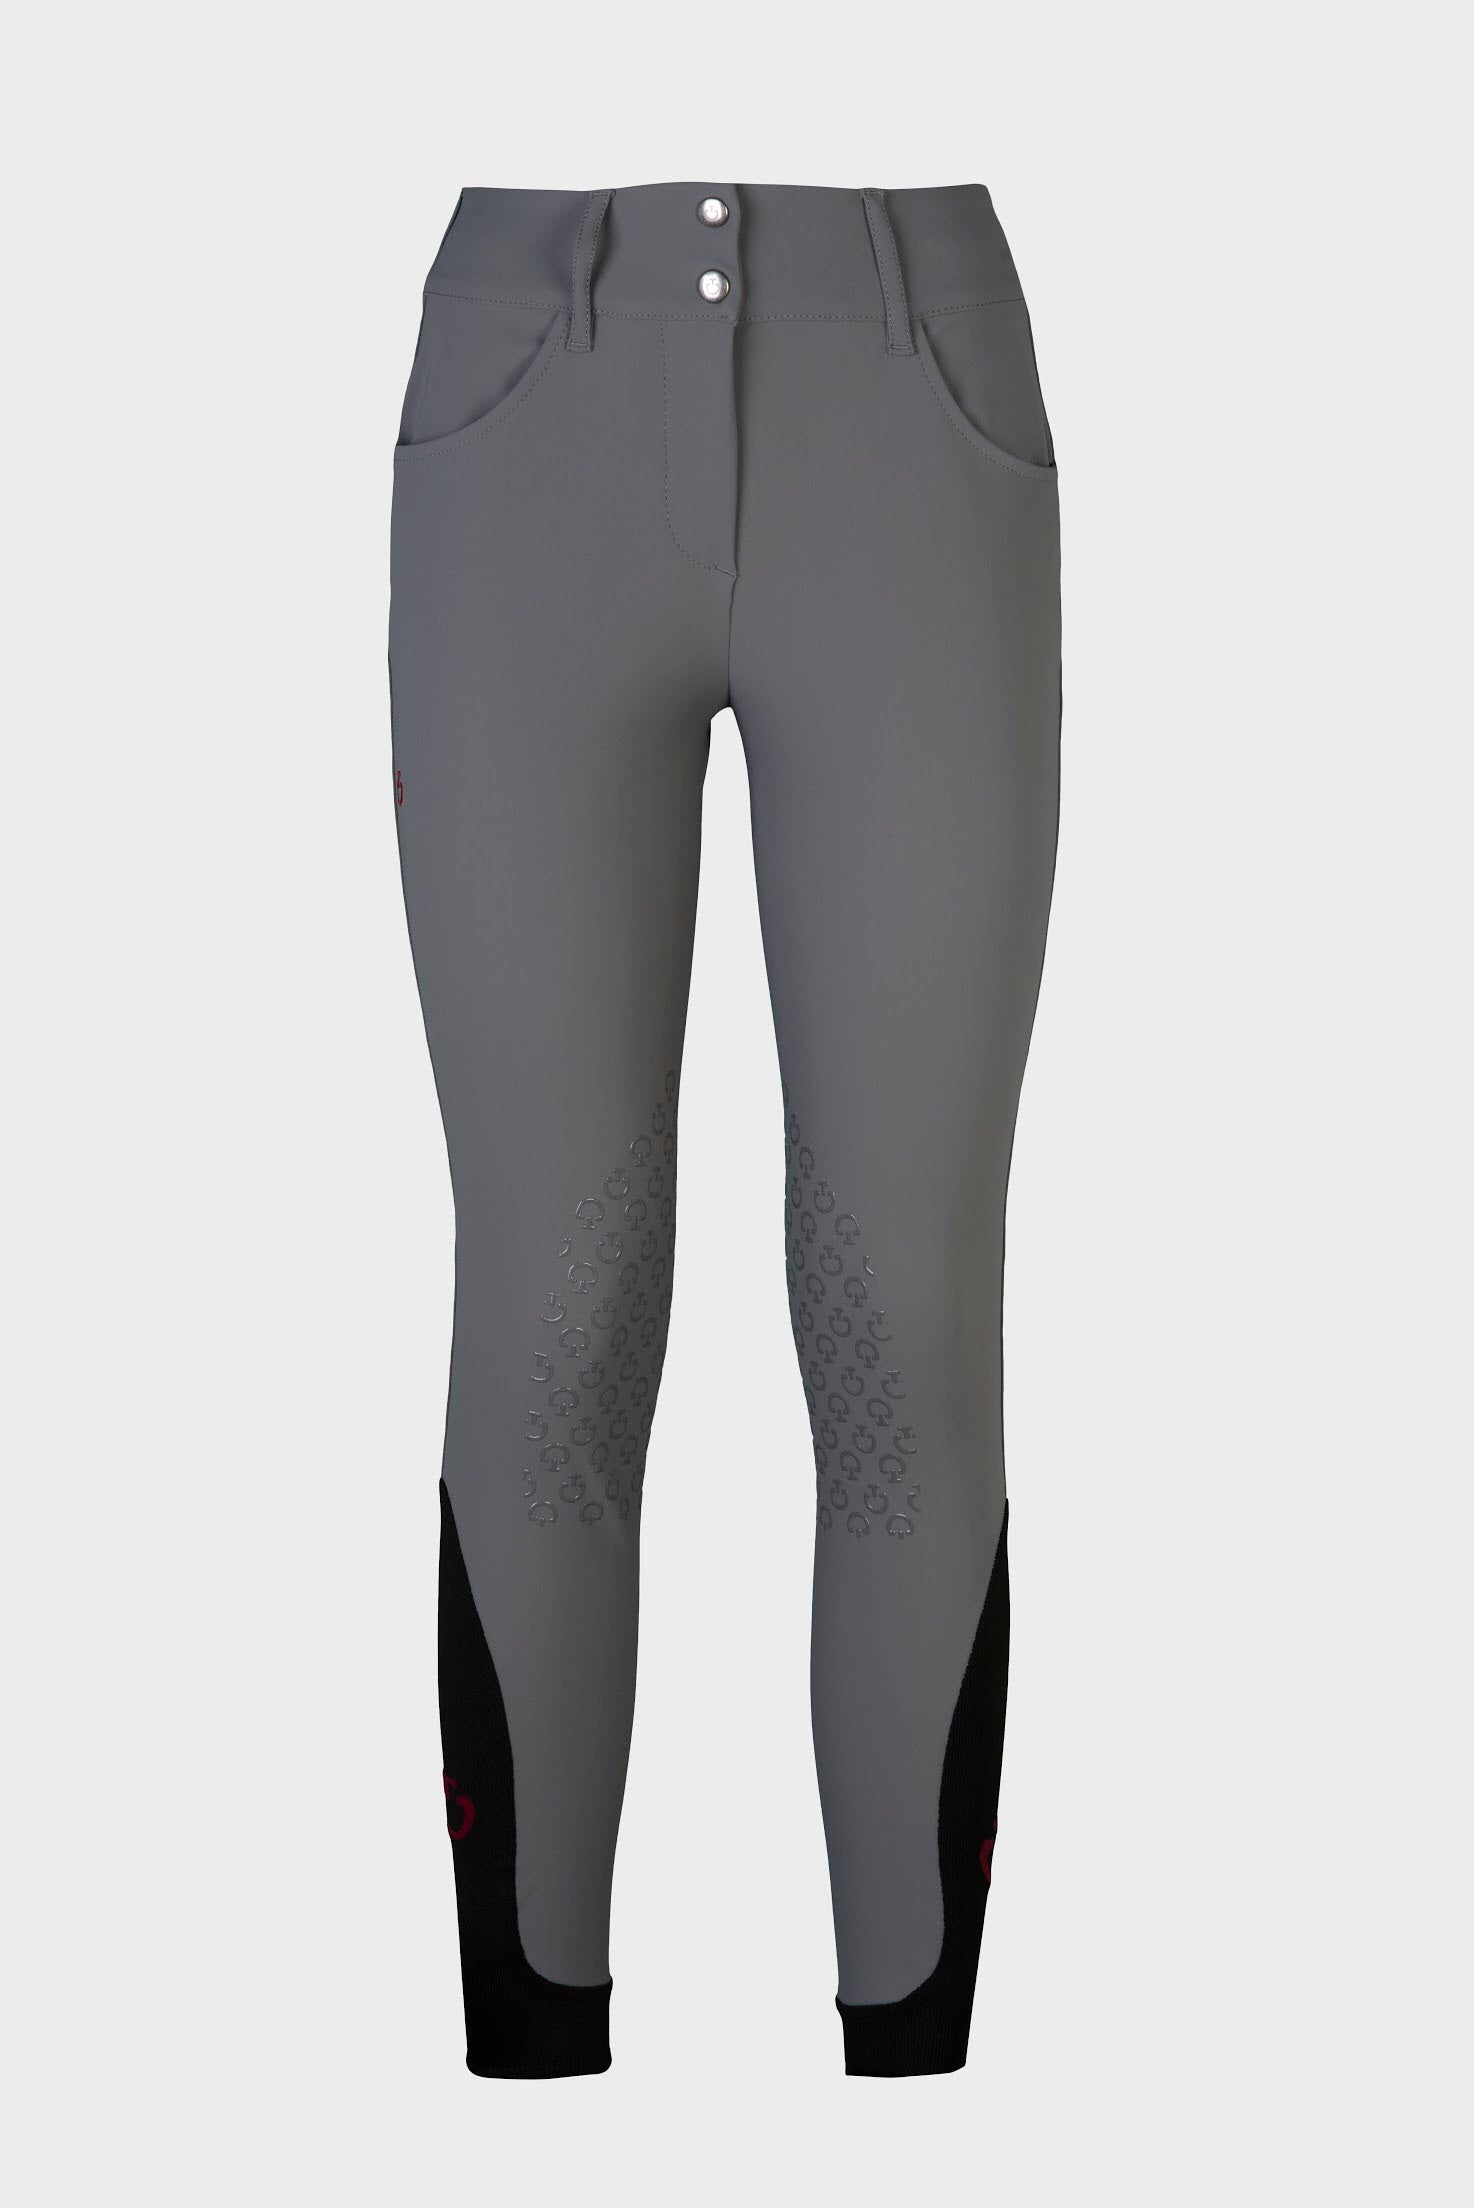 Cavalleria Toscana American Breeches Medium Grey 8980 - Luxe EQ